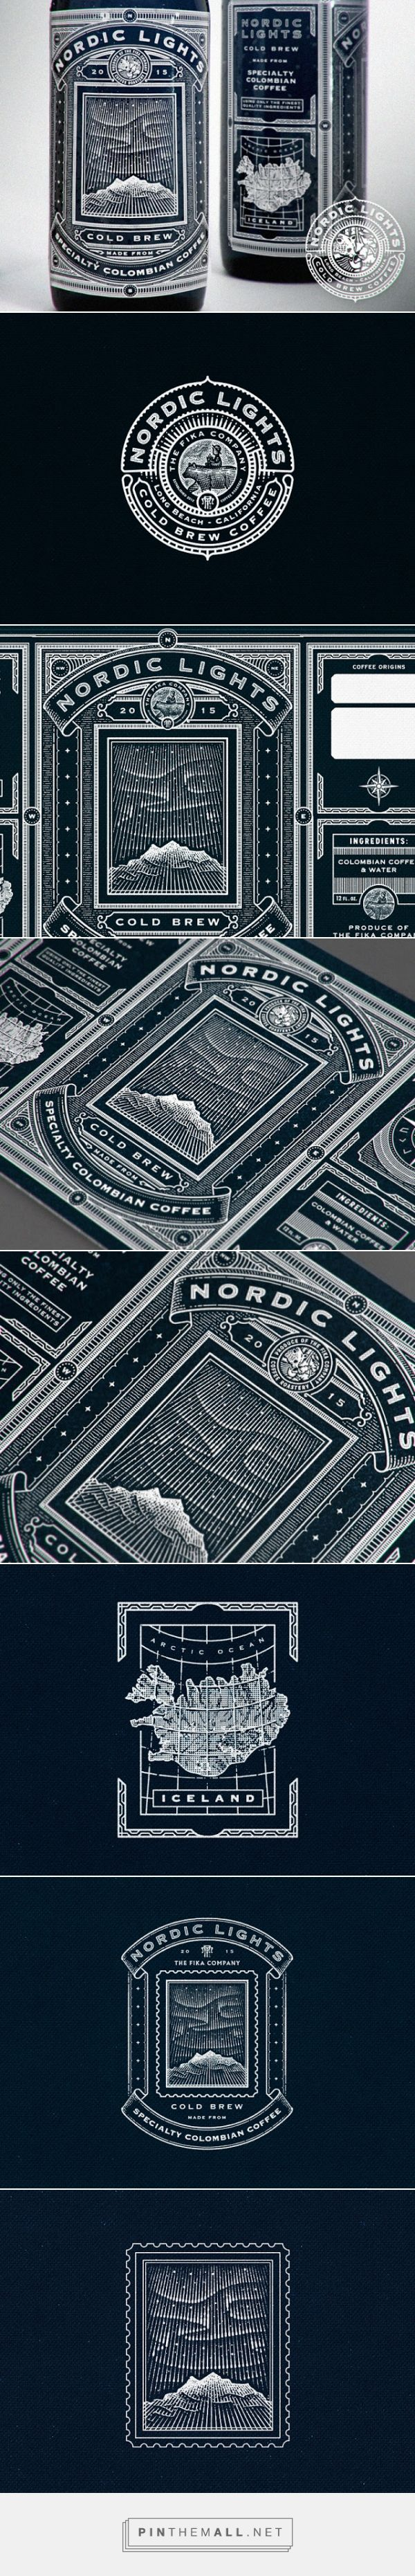 Nordic Lights Coffee packaging designed by Ye Olde Studio - http://www.packagingoftheworld.com/2016/01/nordic-lights.html